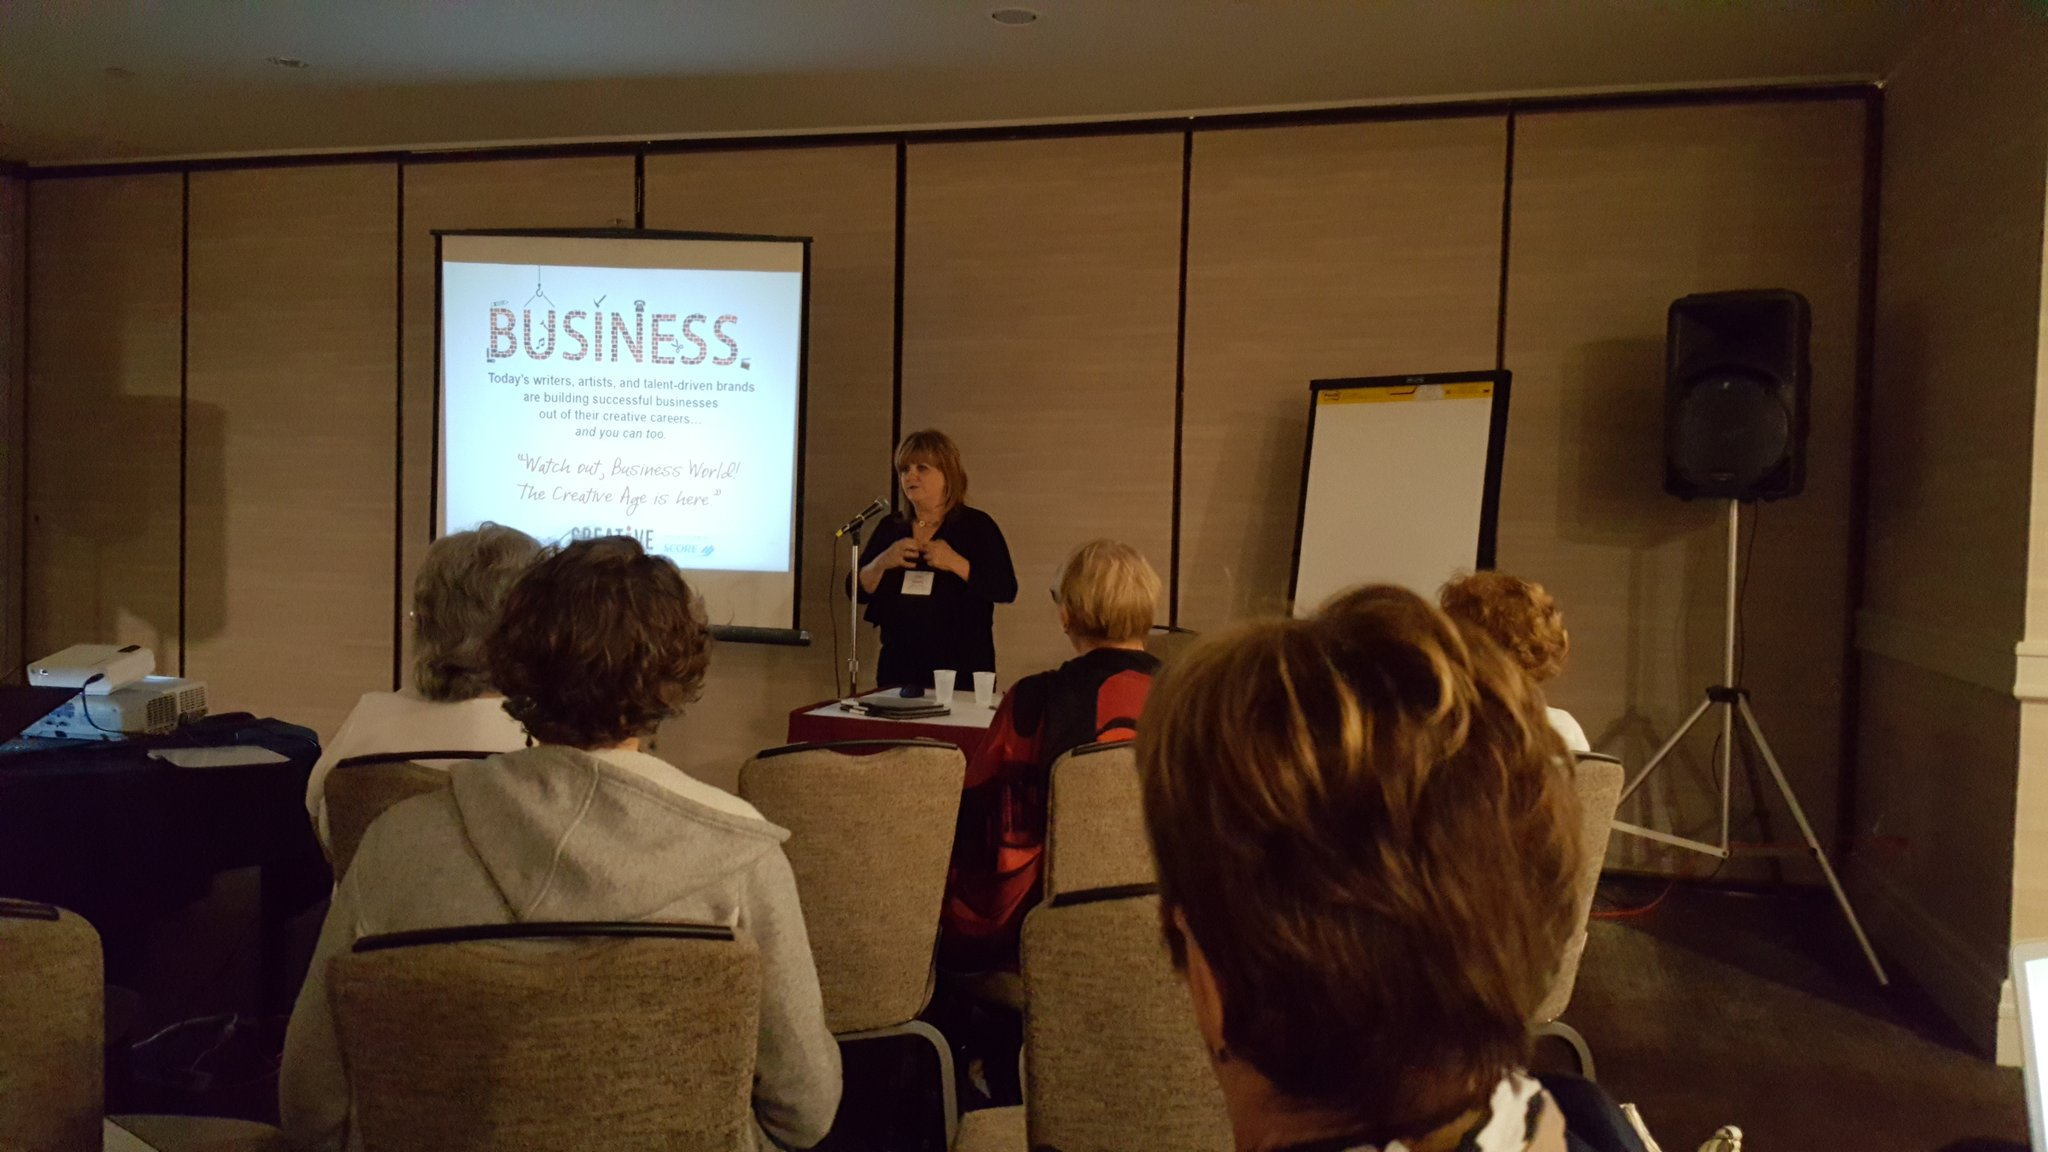 #marketing workshop for crrativez with @RobinBlakely National #storytelling Conference Thanks @NSNstorycon https://t.co/T7jtlOjfDV